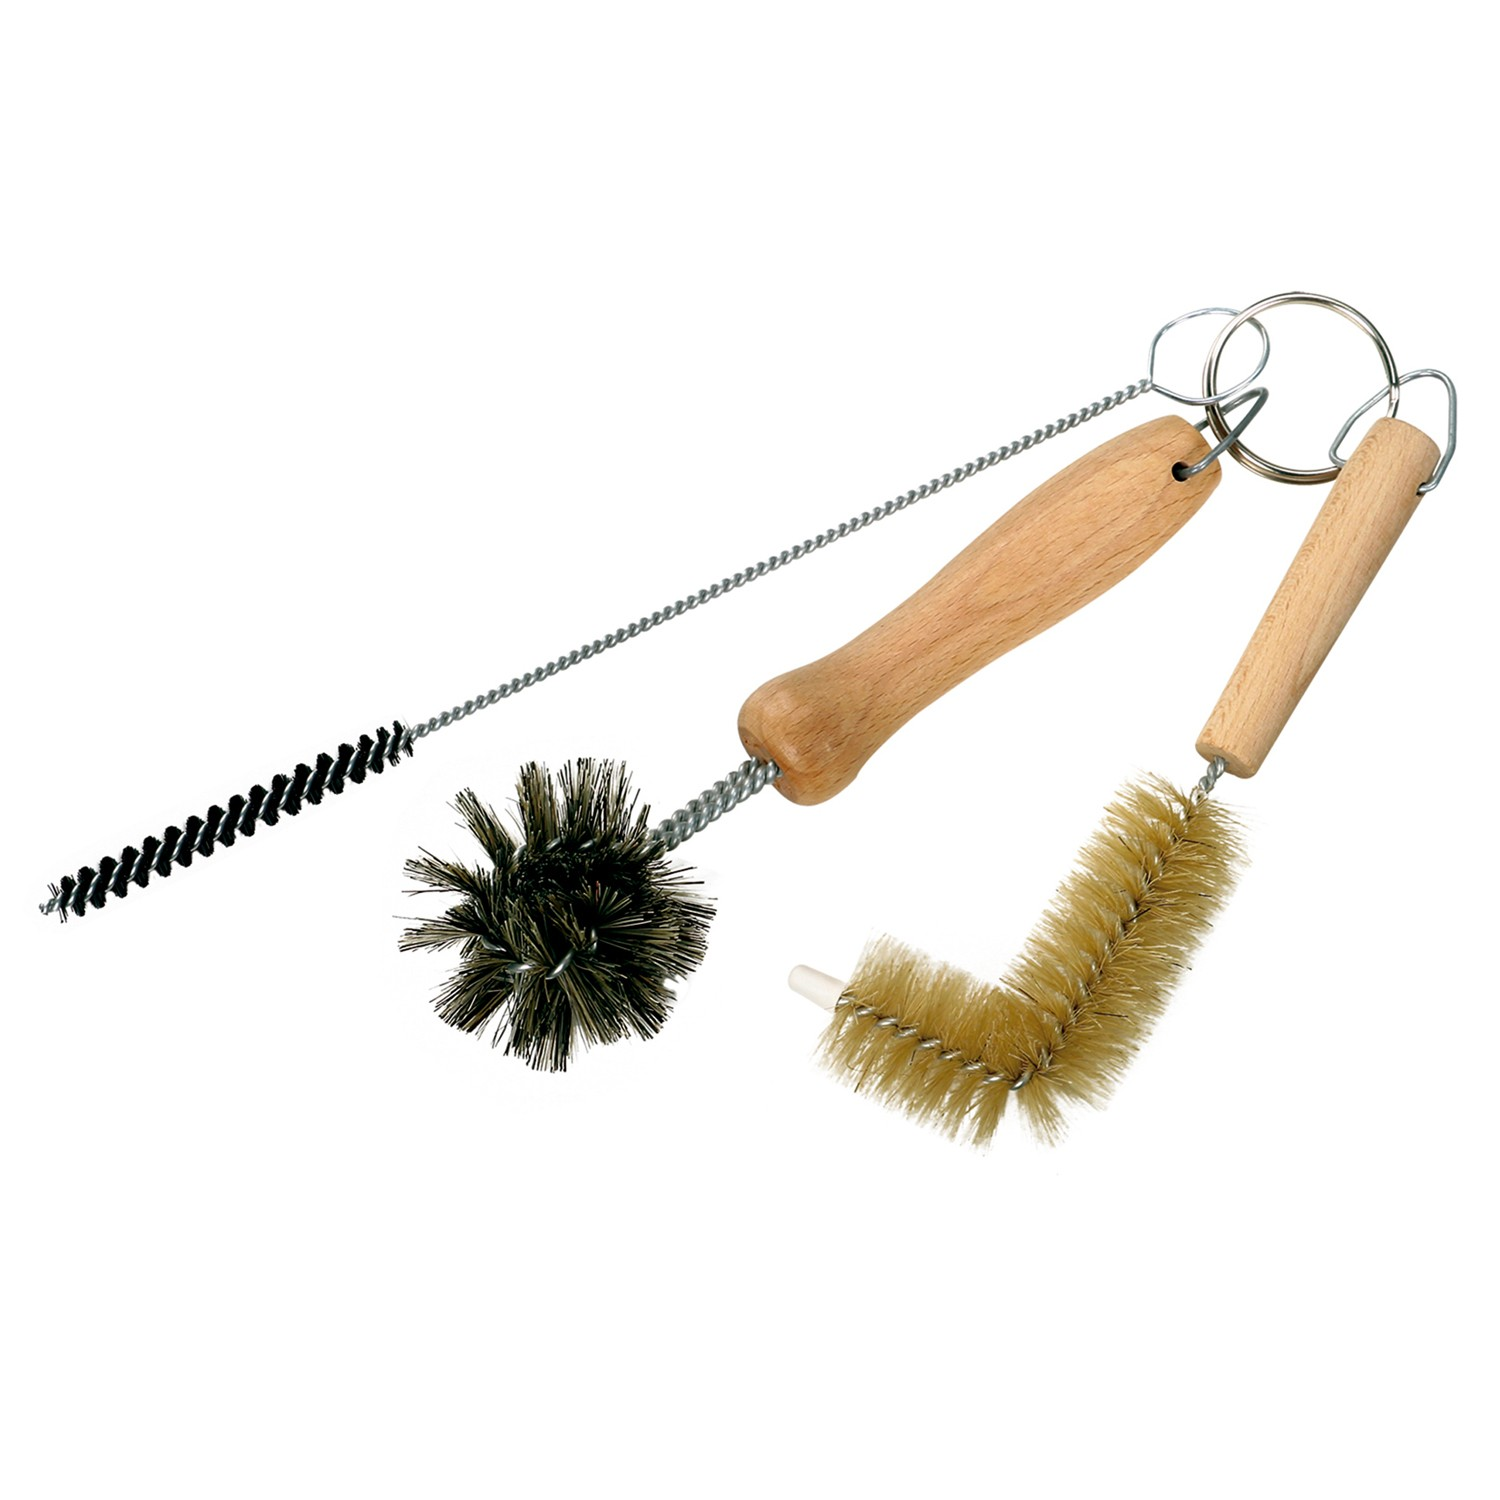 ... Drain And Sink Cleaning Brushes With Natural Brustles Eco Friendly ...